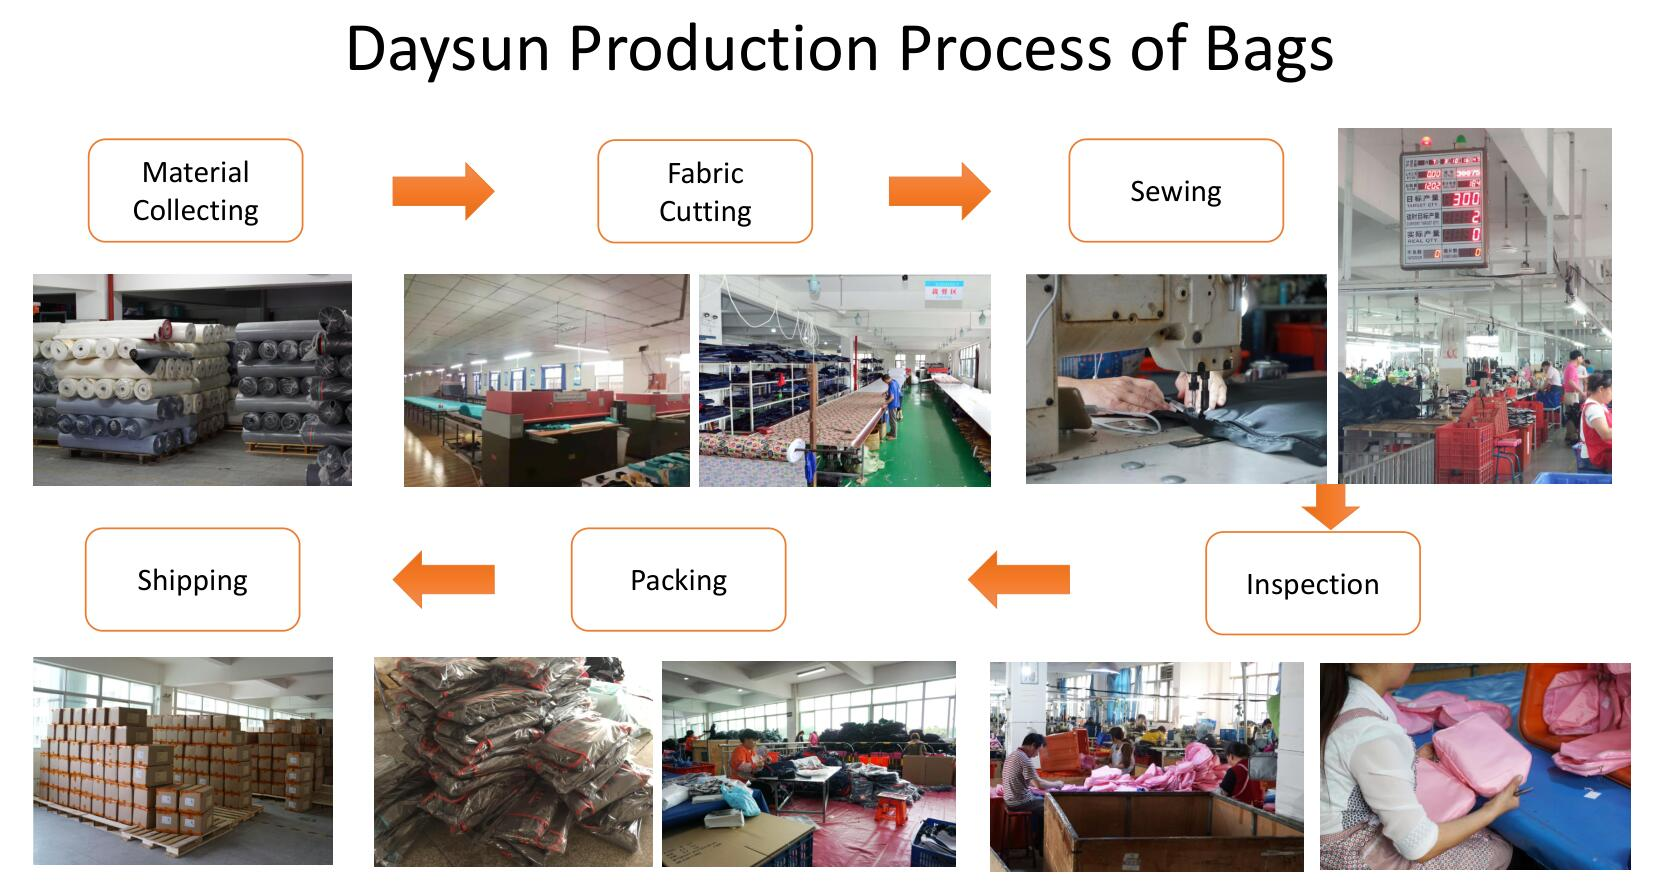 Daysun bag production process